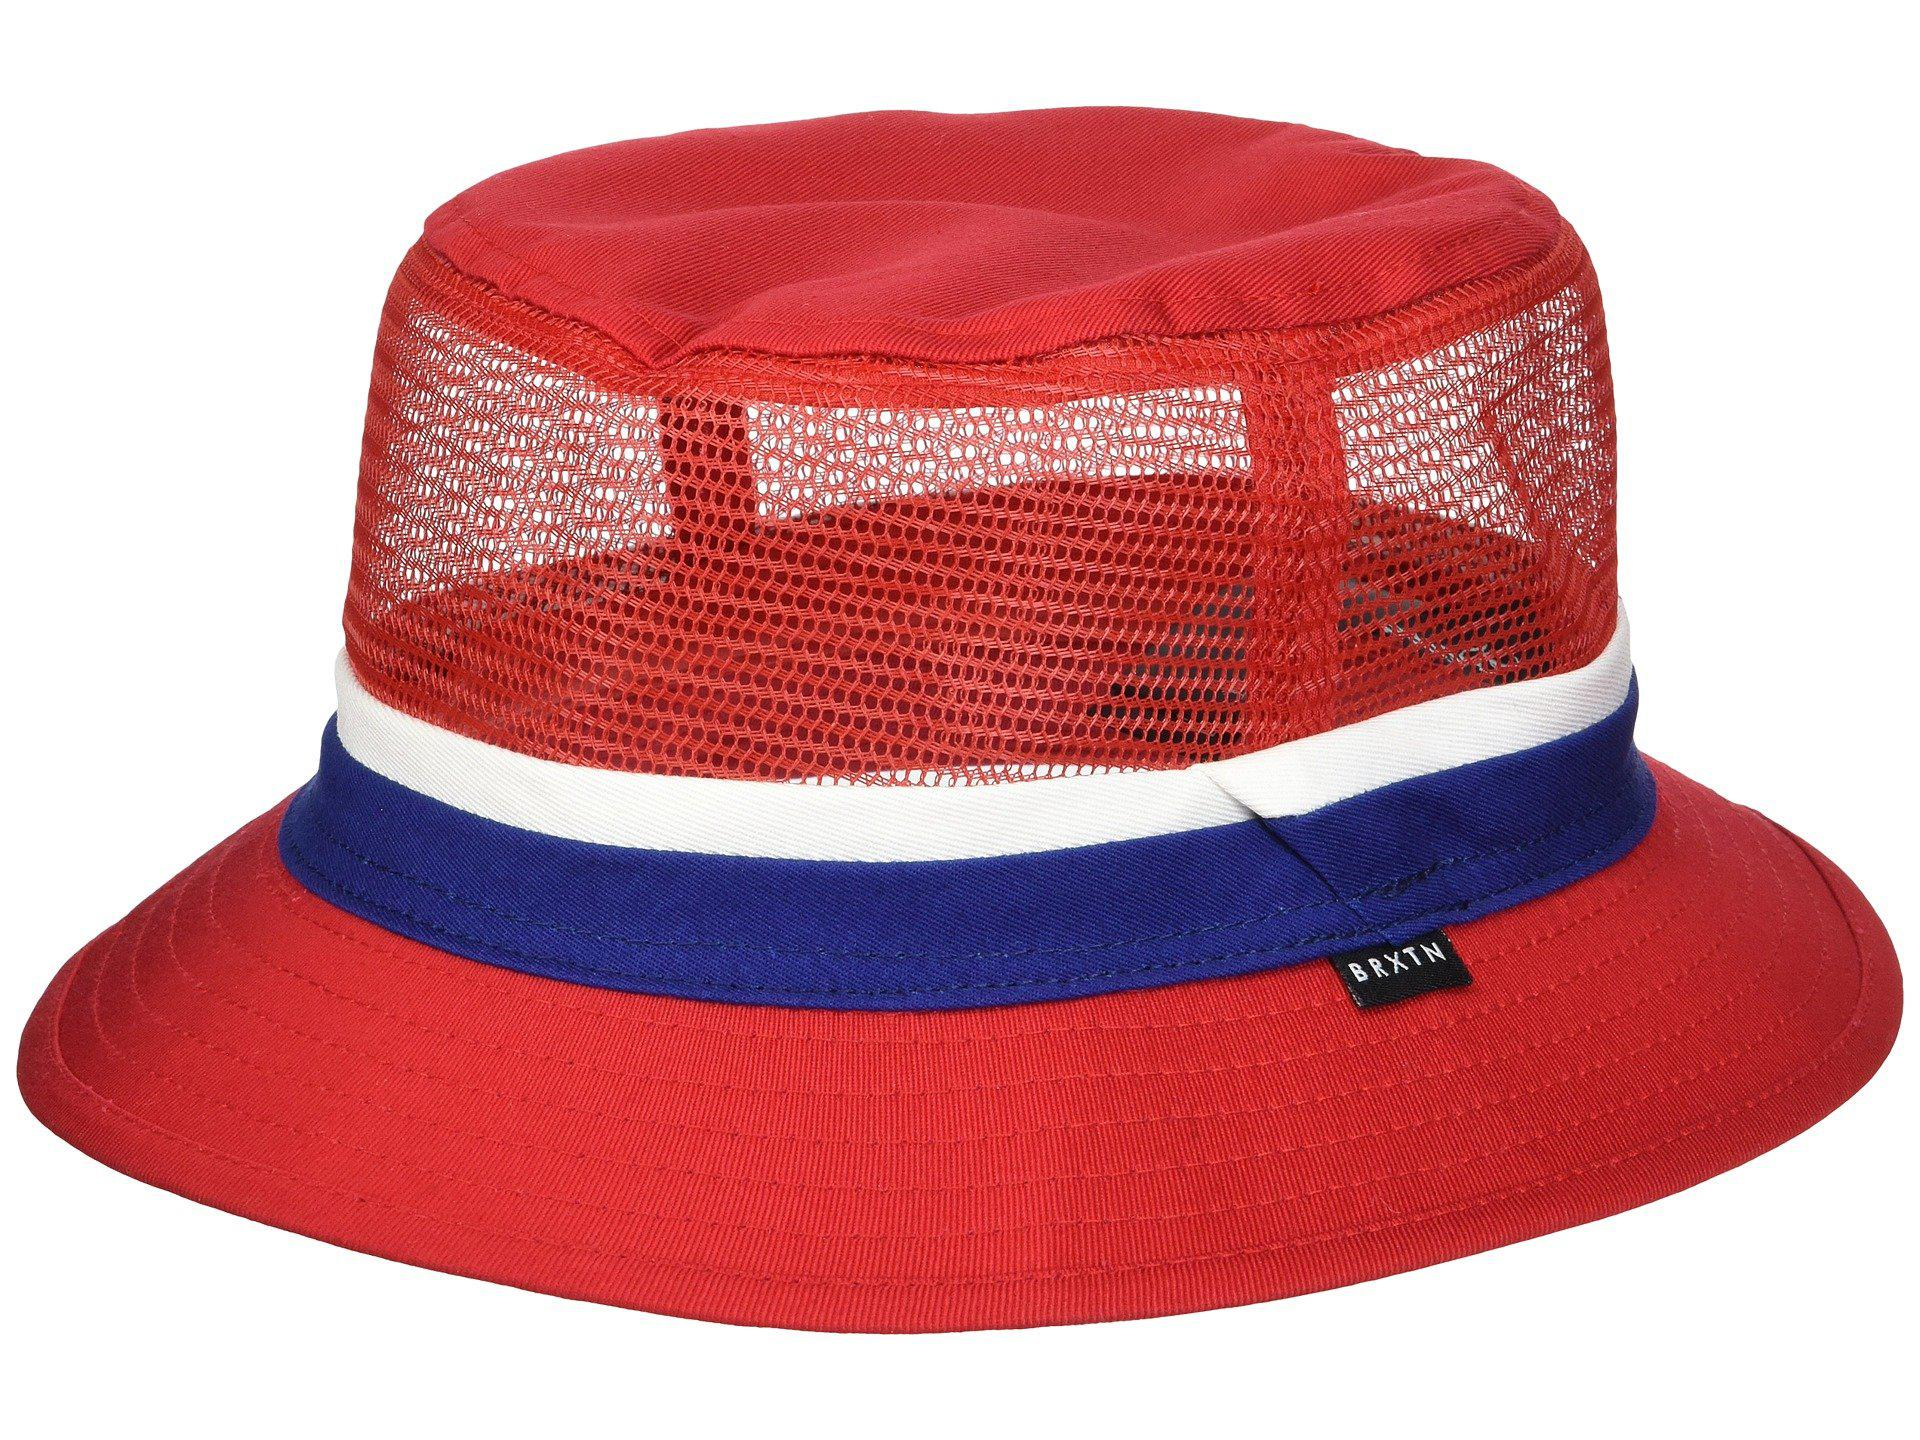 839e2fabb9beb6 ... cheapest brixton. womens red hardy bucket hat d845c c12c5